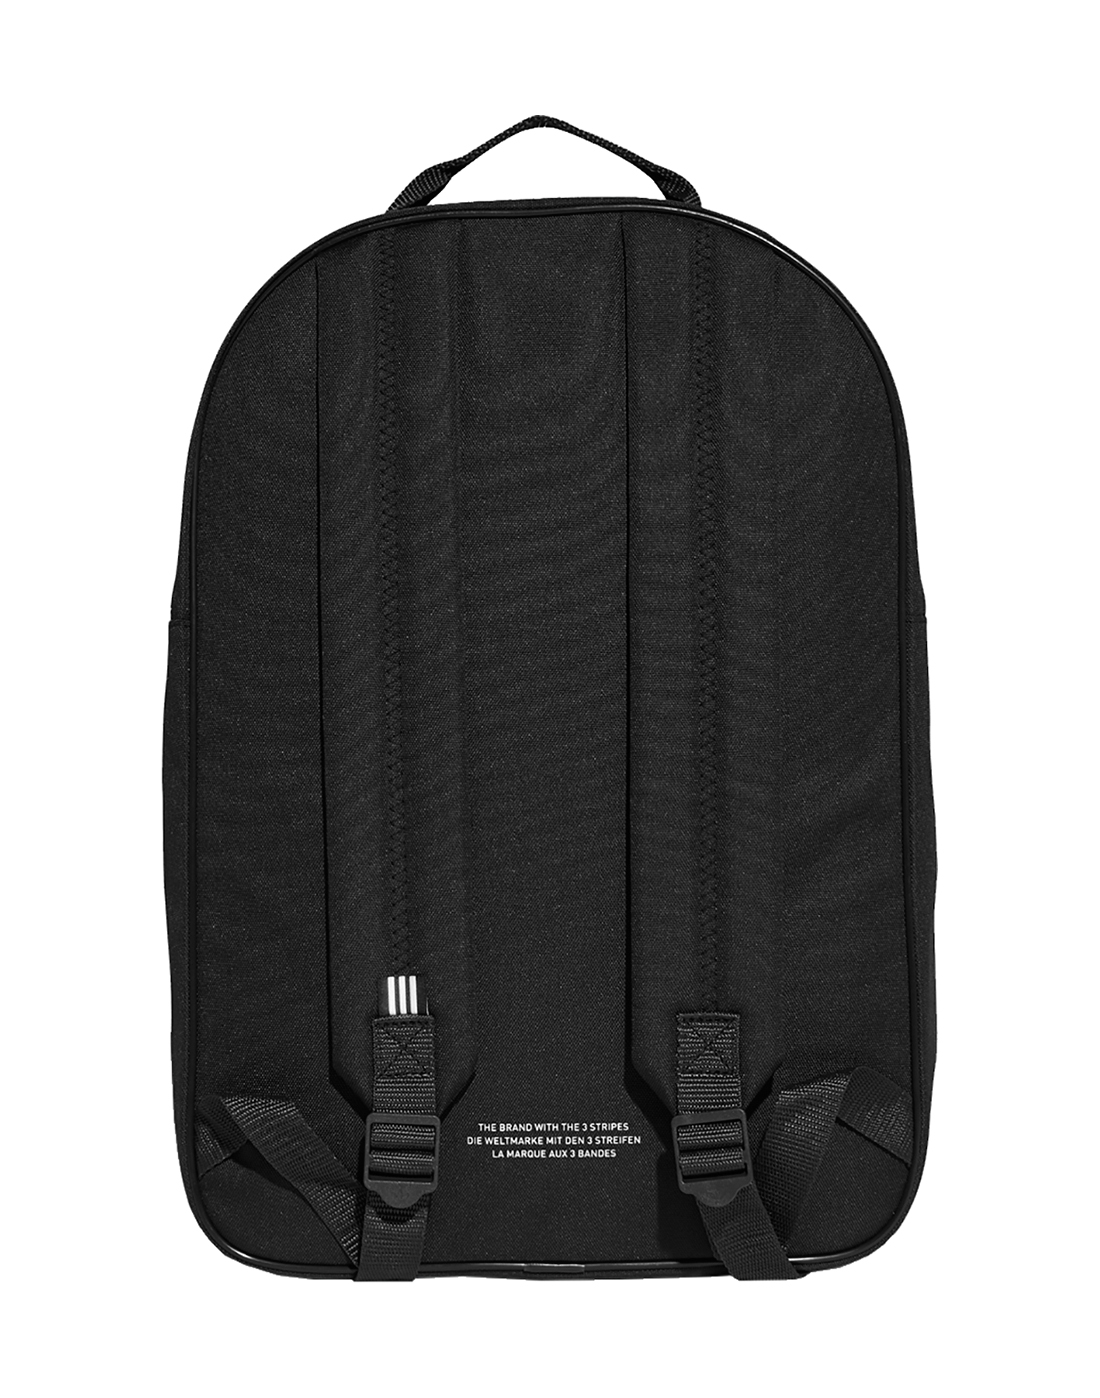 c1acc64d93 CLASSIC TREFOIL BACKPACK · CLASSIC TREFOIL BACKPACK ...